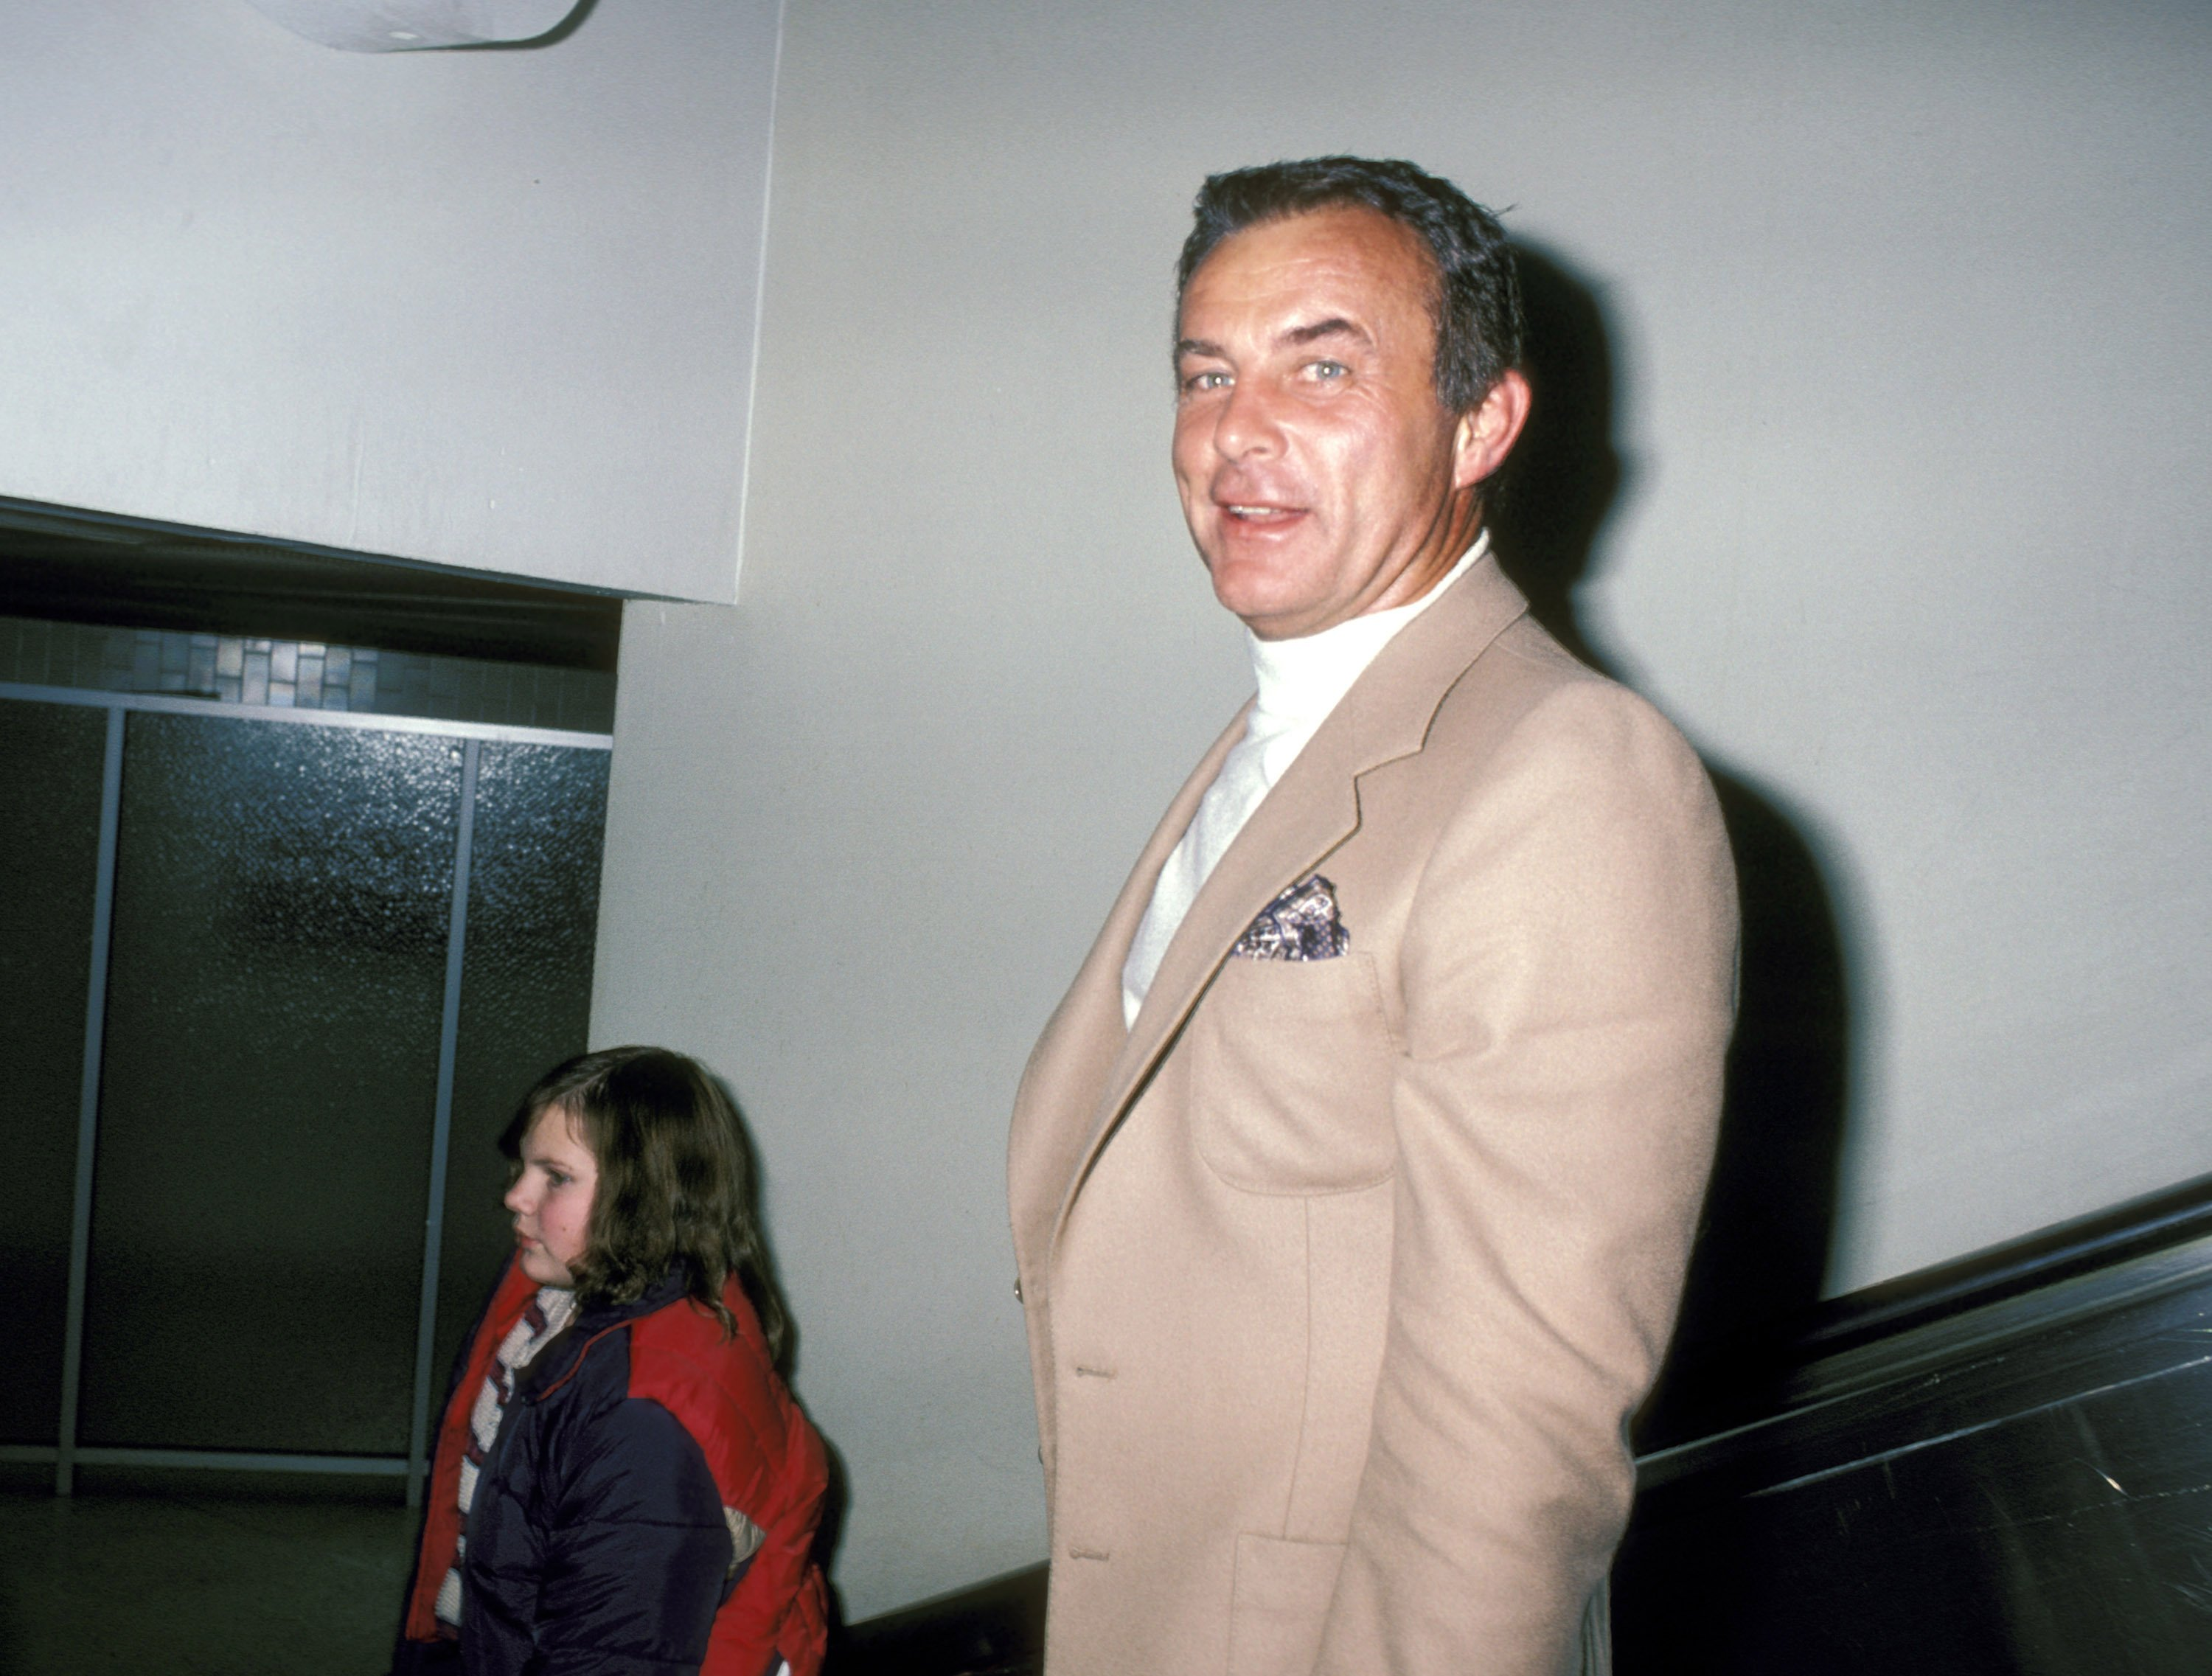 Robert Conrad at the Los Angeles International Airport on New Year's Eve in 1980 in Los Angeles, California | Photo: Ron Galella/Ron Galella Collection via Getty Images